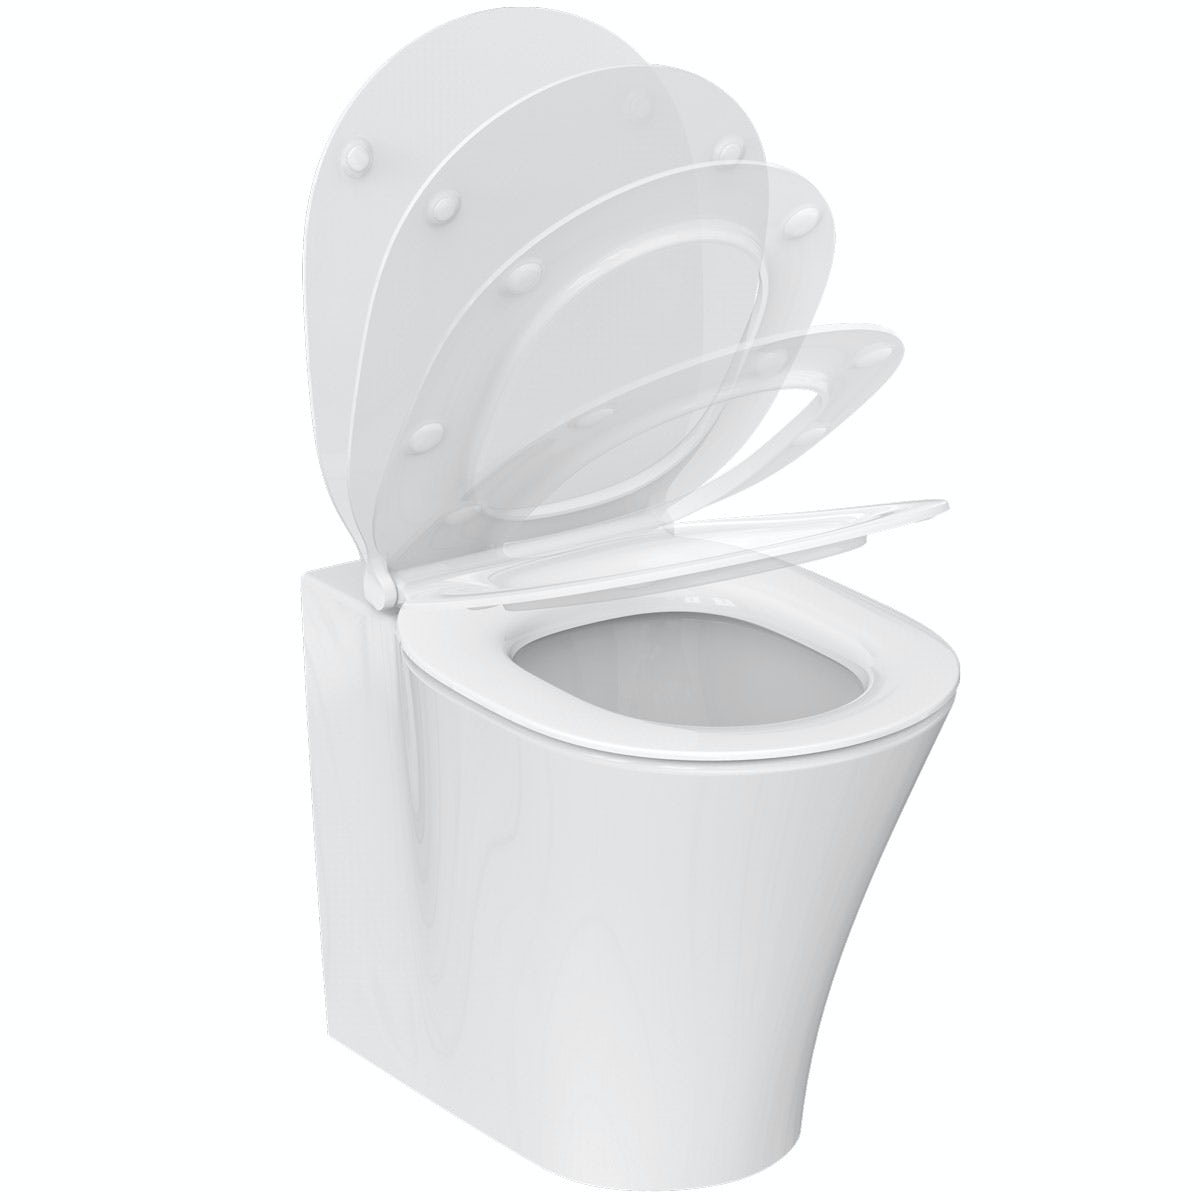 Ideal Standard Concept Air back to wall toilet with soft close toilet seat